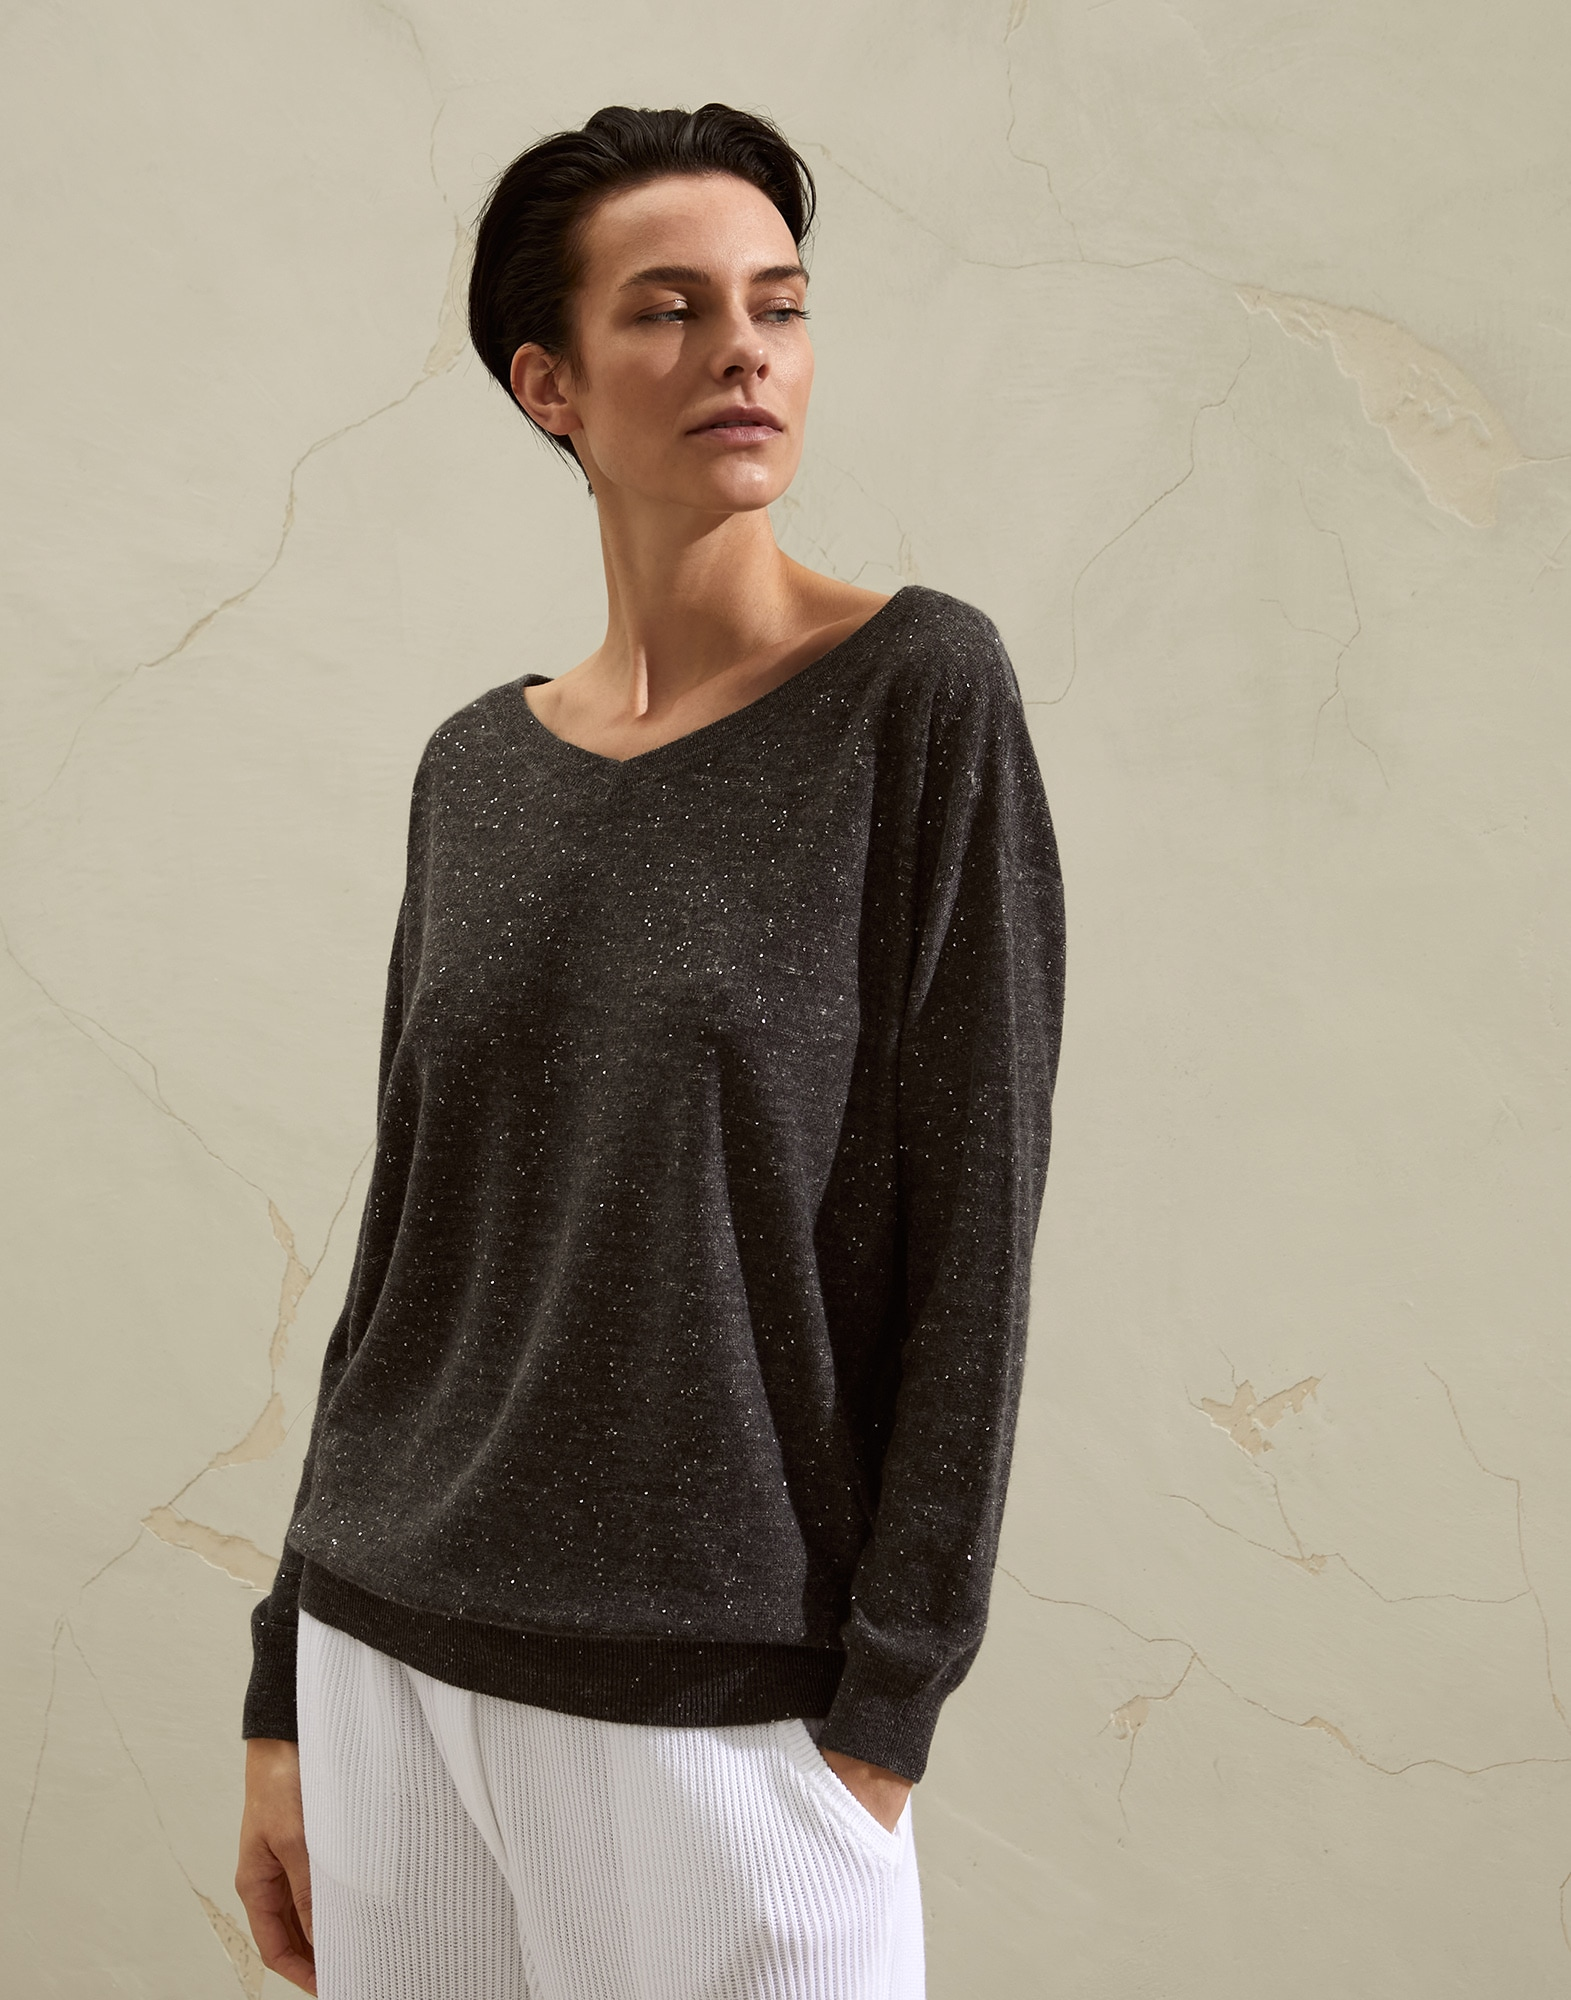 Scoop Neck - Front